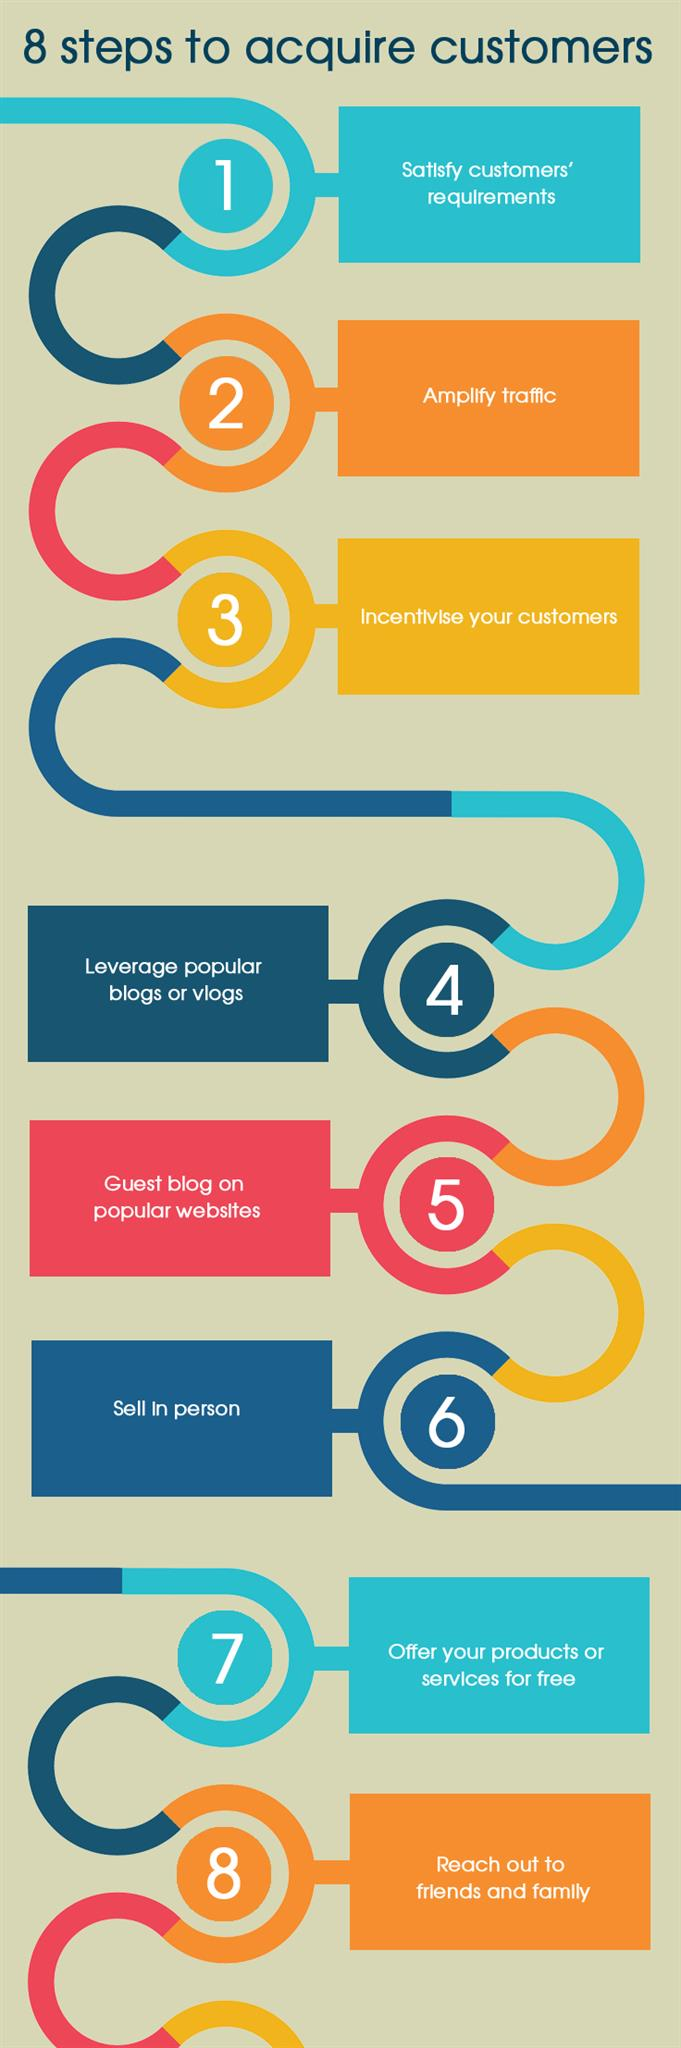 Eight Steps to Acquire Customers for Next to Nothing- Infographic